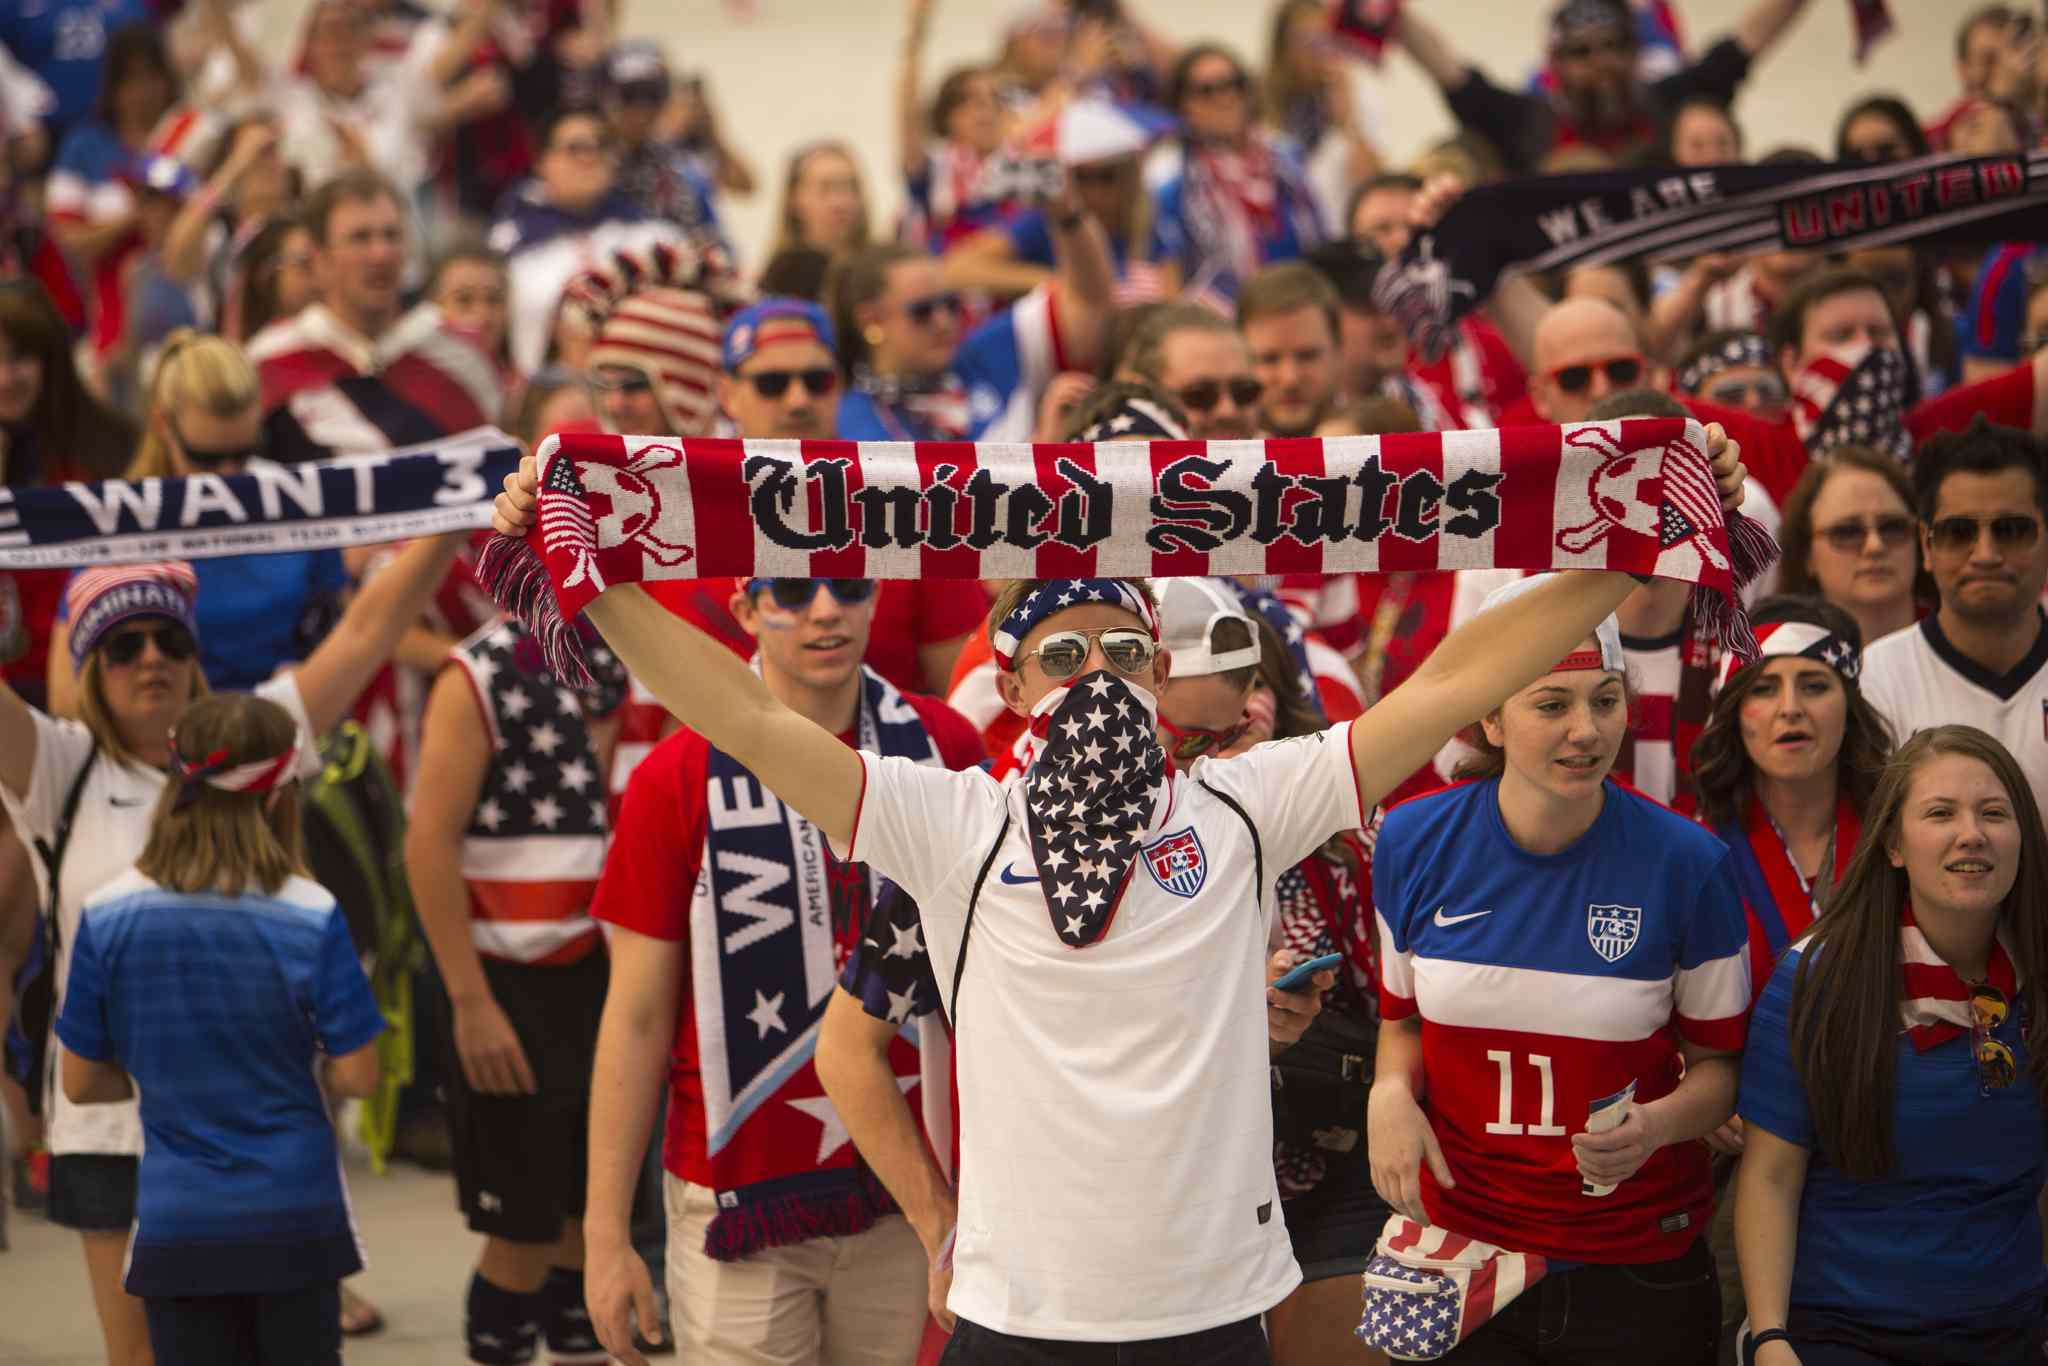 Members of the soccer fan group the American Outlaws march up to the stadium to see the FIFA World Cup United States vs. Australia game at the Investors Group Field on Monday, June 8, 2015.